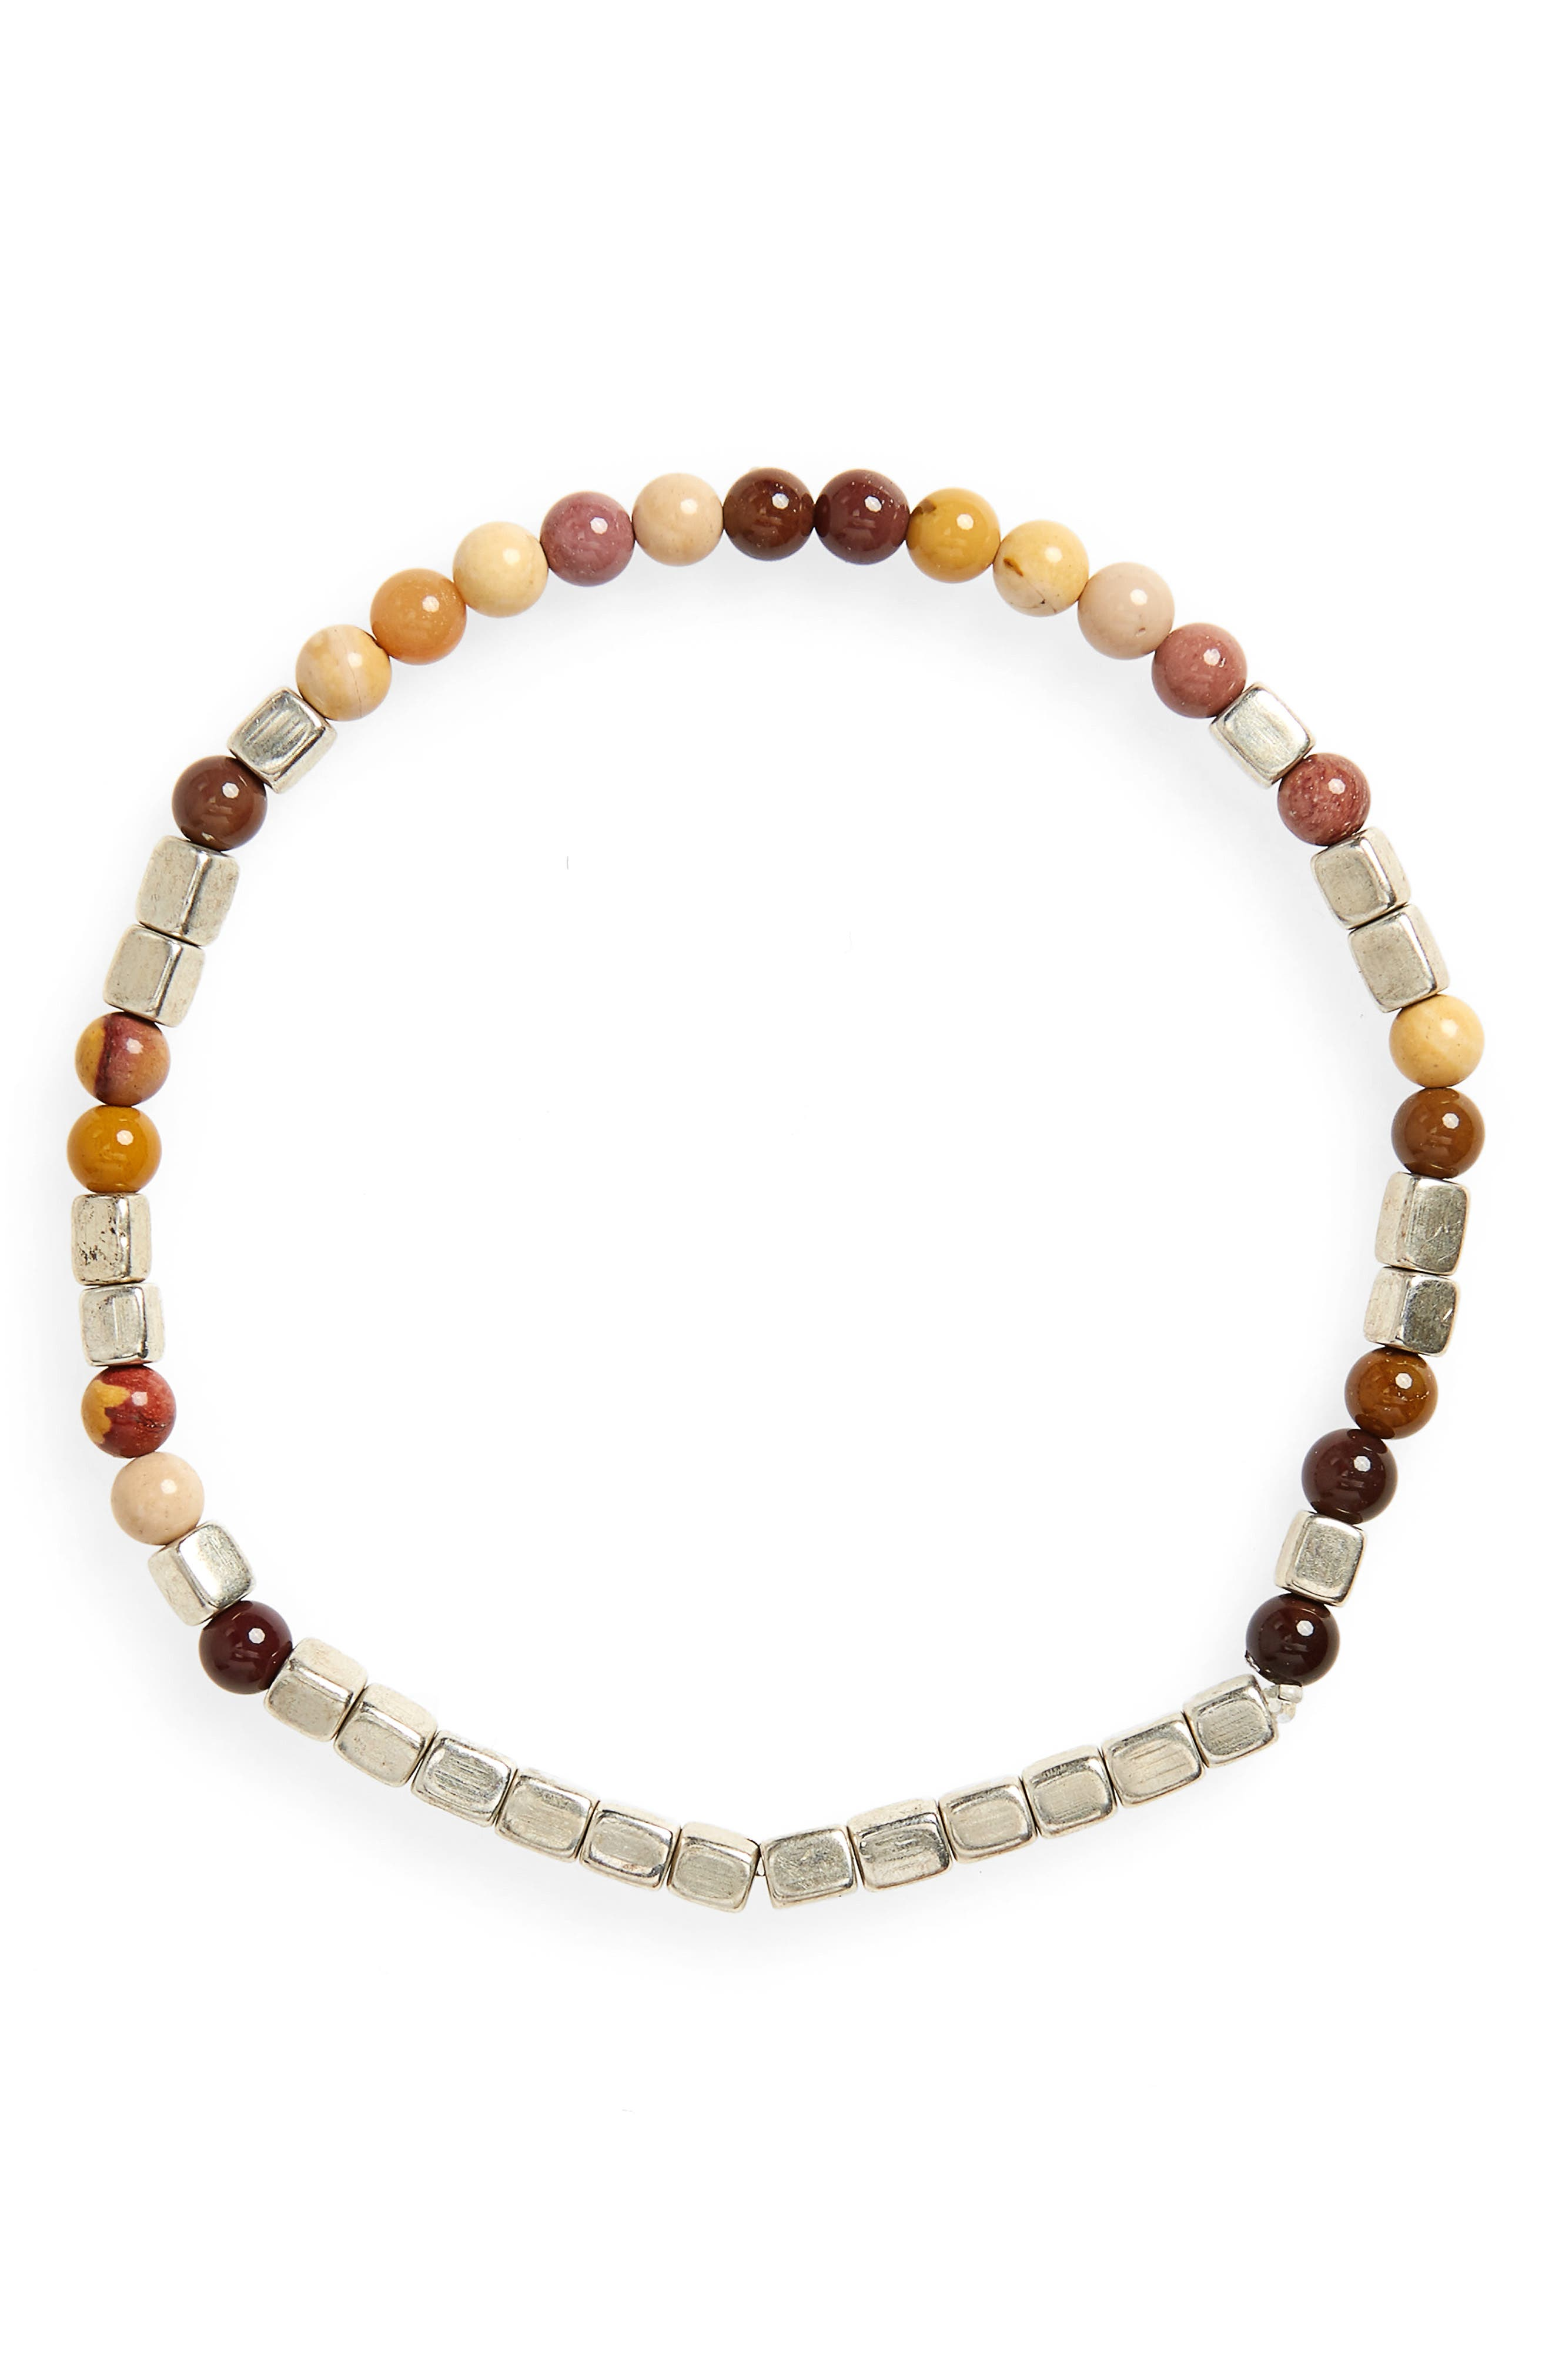 Mookaite Bead Bracelet,                             Main thumbnail 1, color,                             SILVER/ BROWN